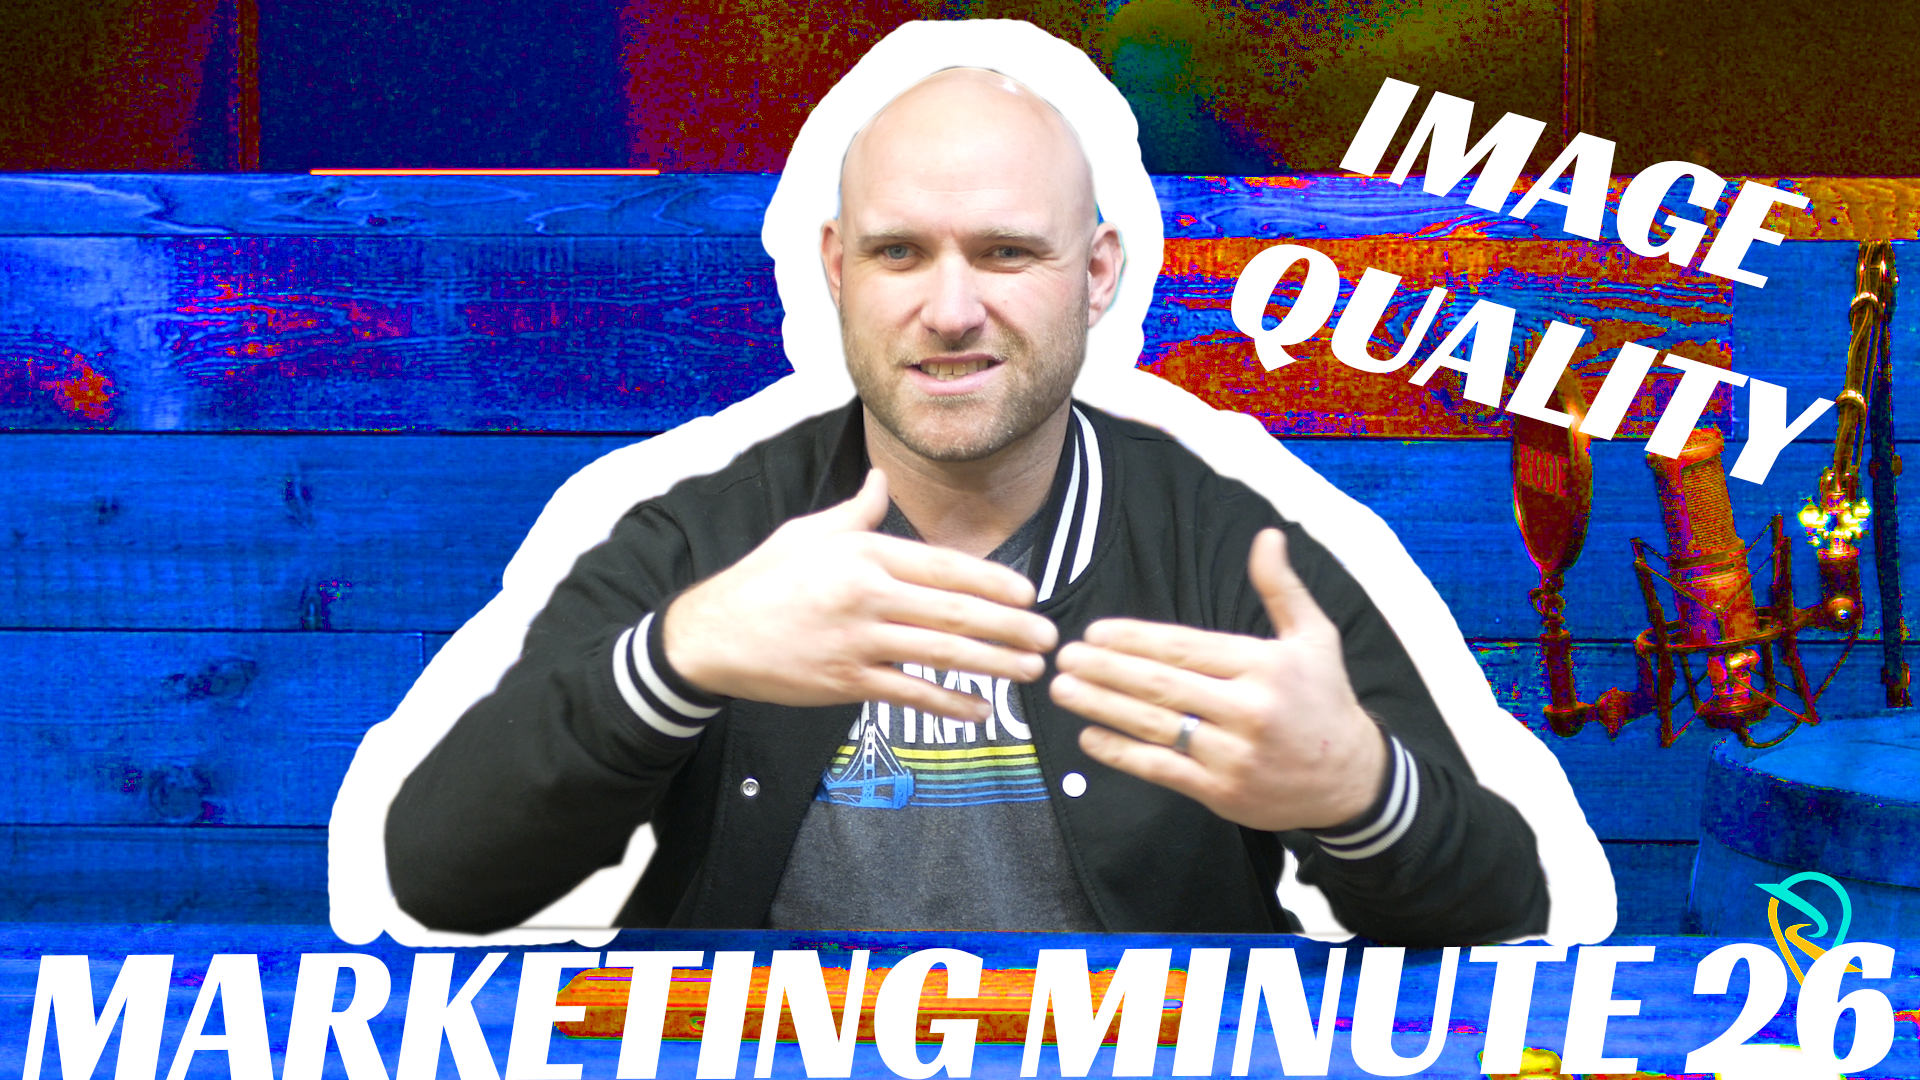 marketing-minute-image-quality-marketing